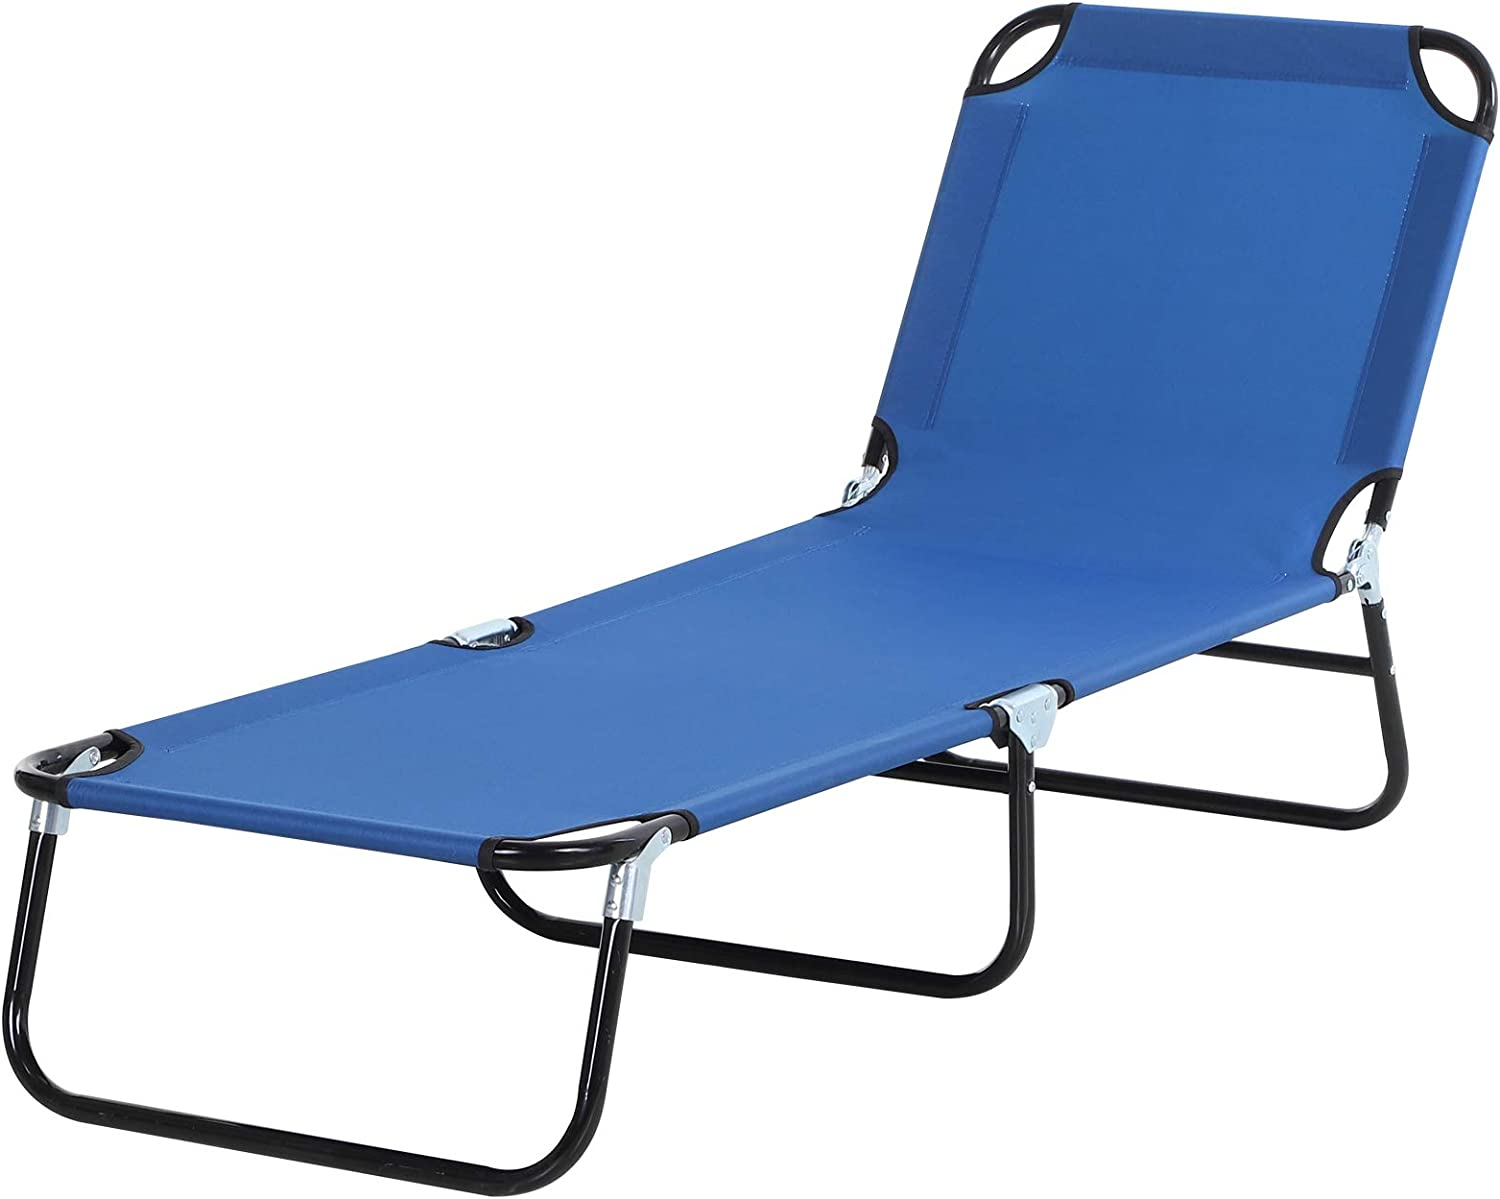 Outsunny 4-Position Seasonal Wrap Free Shipping New Introduction Adjustable Backrest Chaise wit Chair Lounger